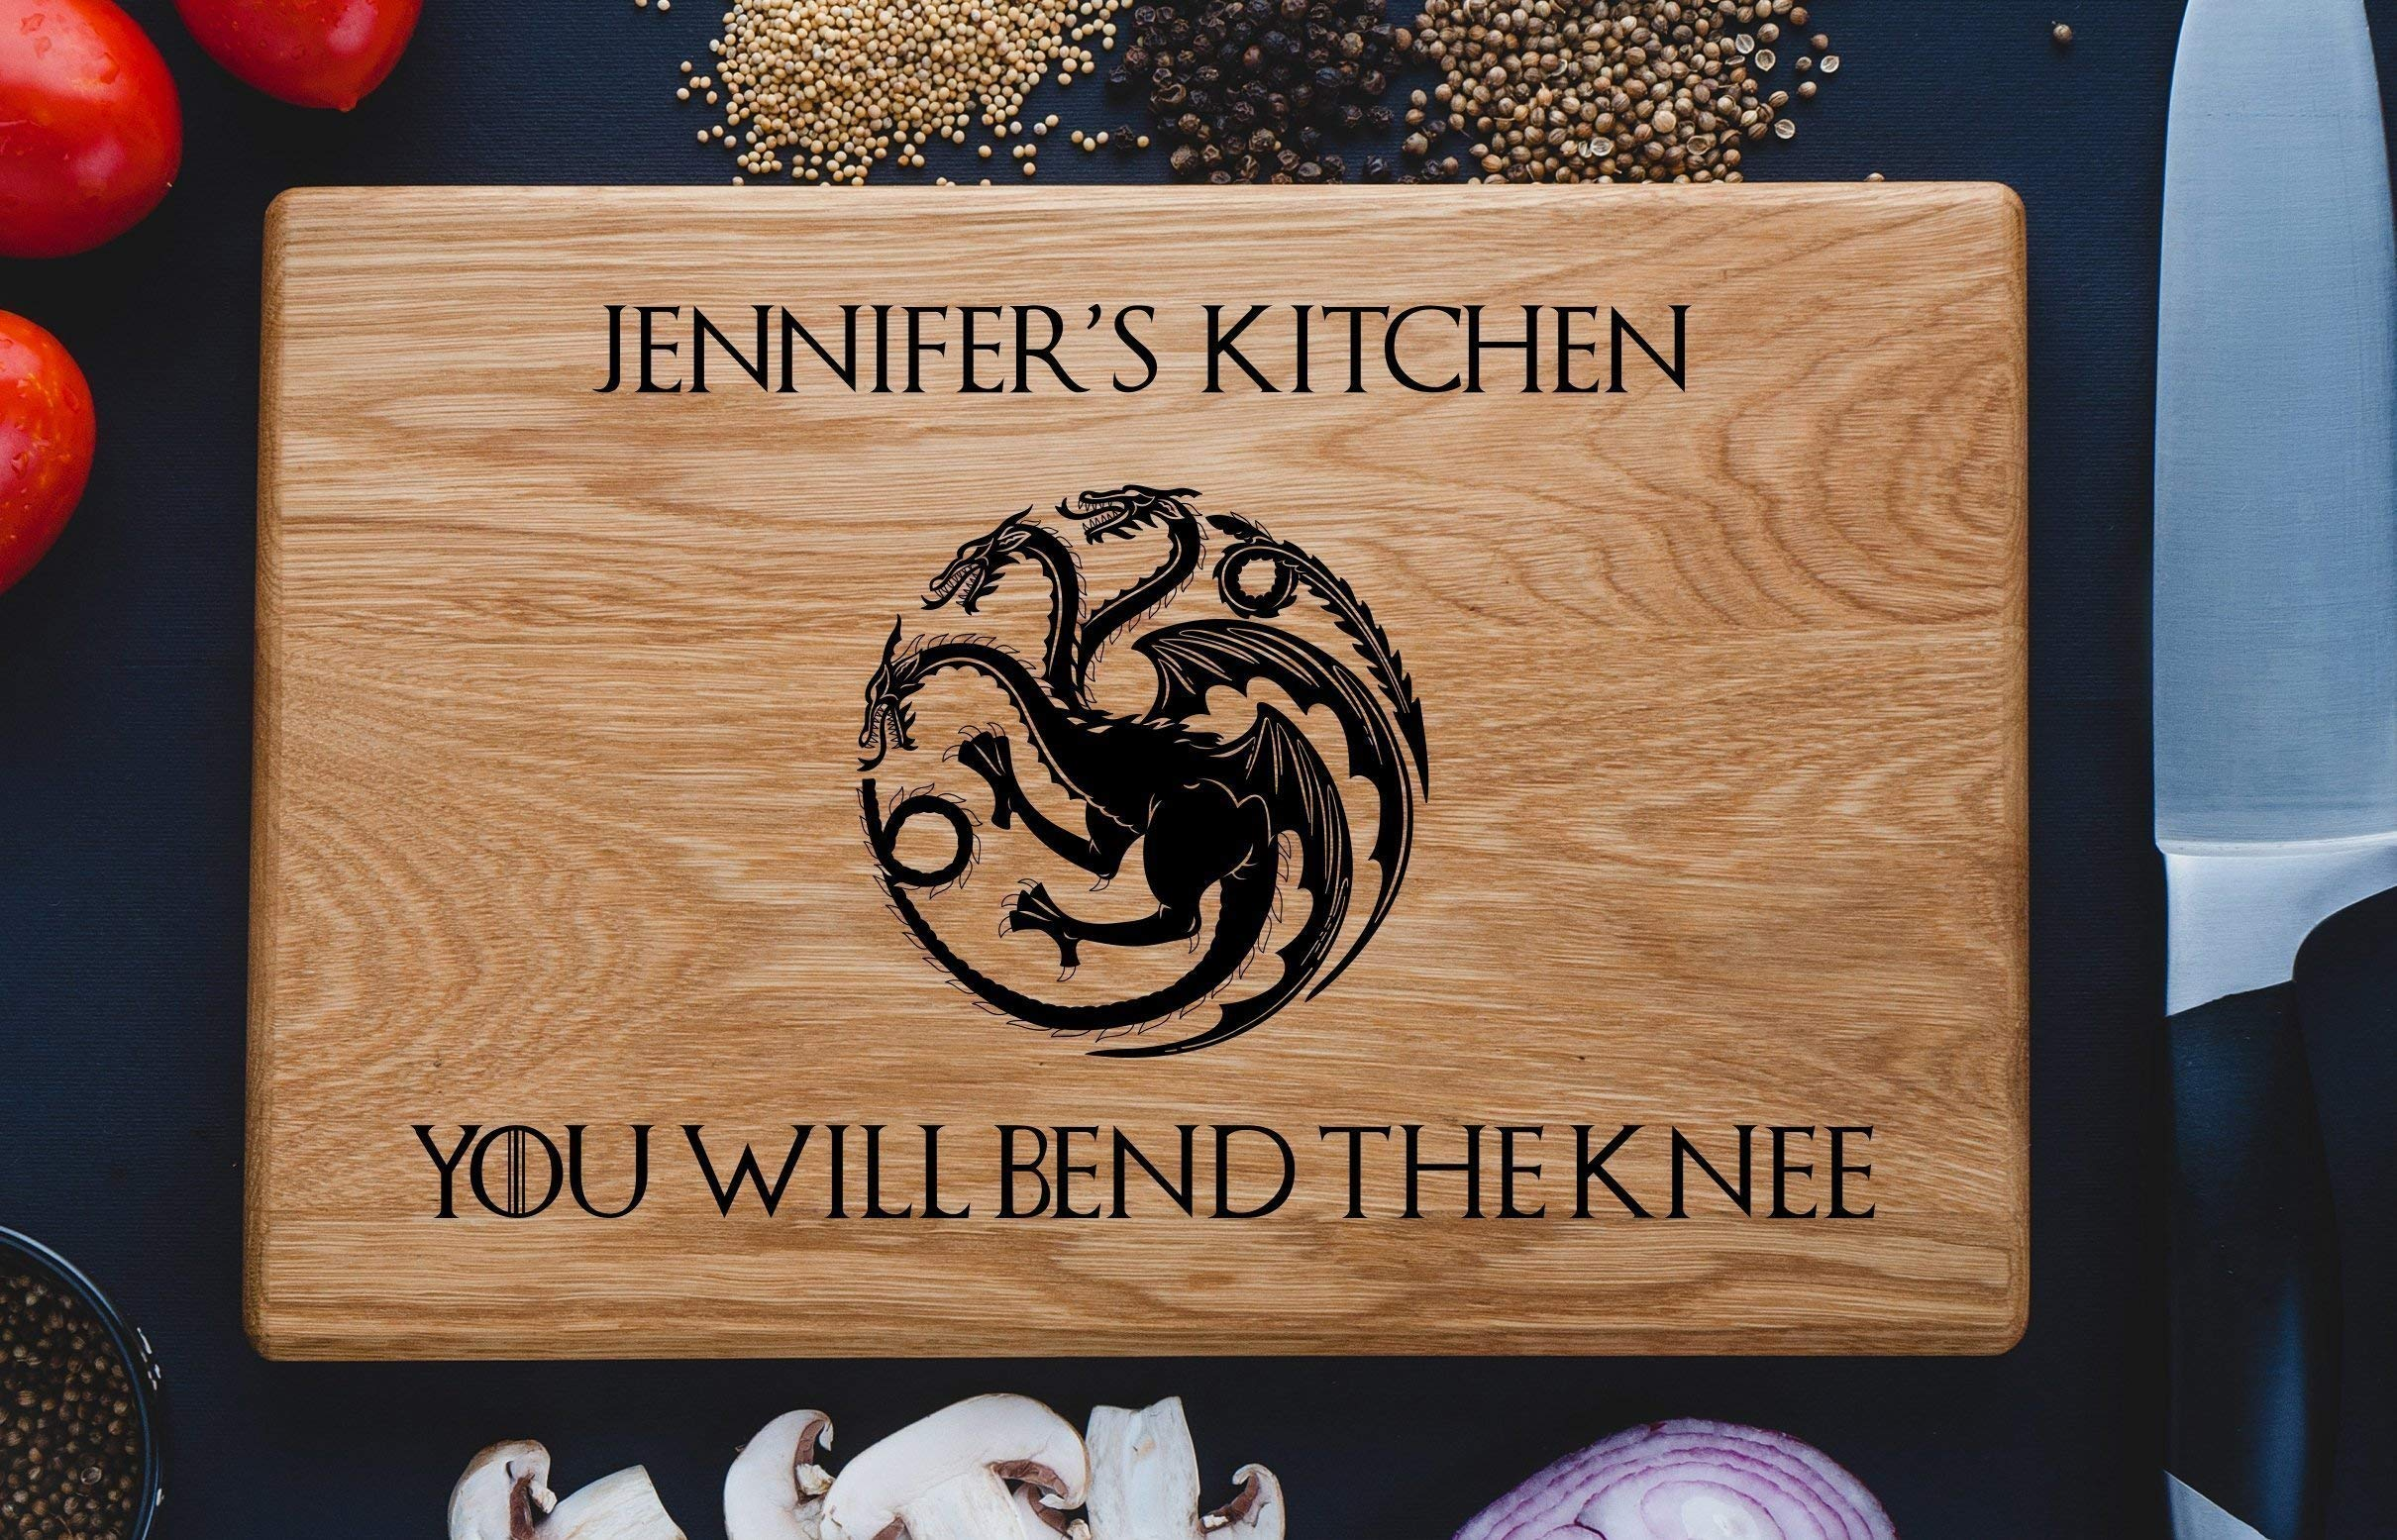 Personalized Cutting Board House Targaryen Fire And Bacon Blood Daenerys Dinner is coming Game of thrones House Stark Direwolf Engraved Custom Family Wedding Gift Anniversary Housewarming game05